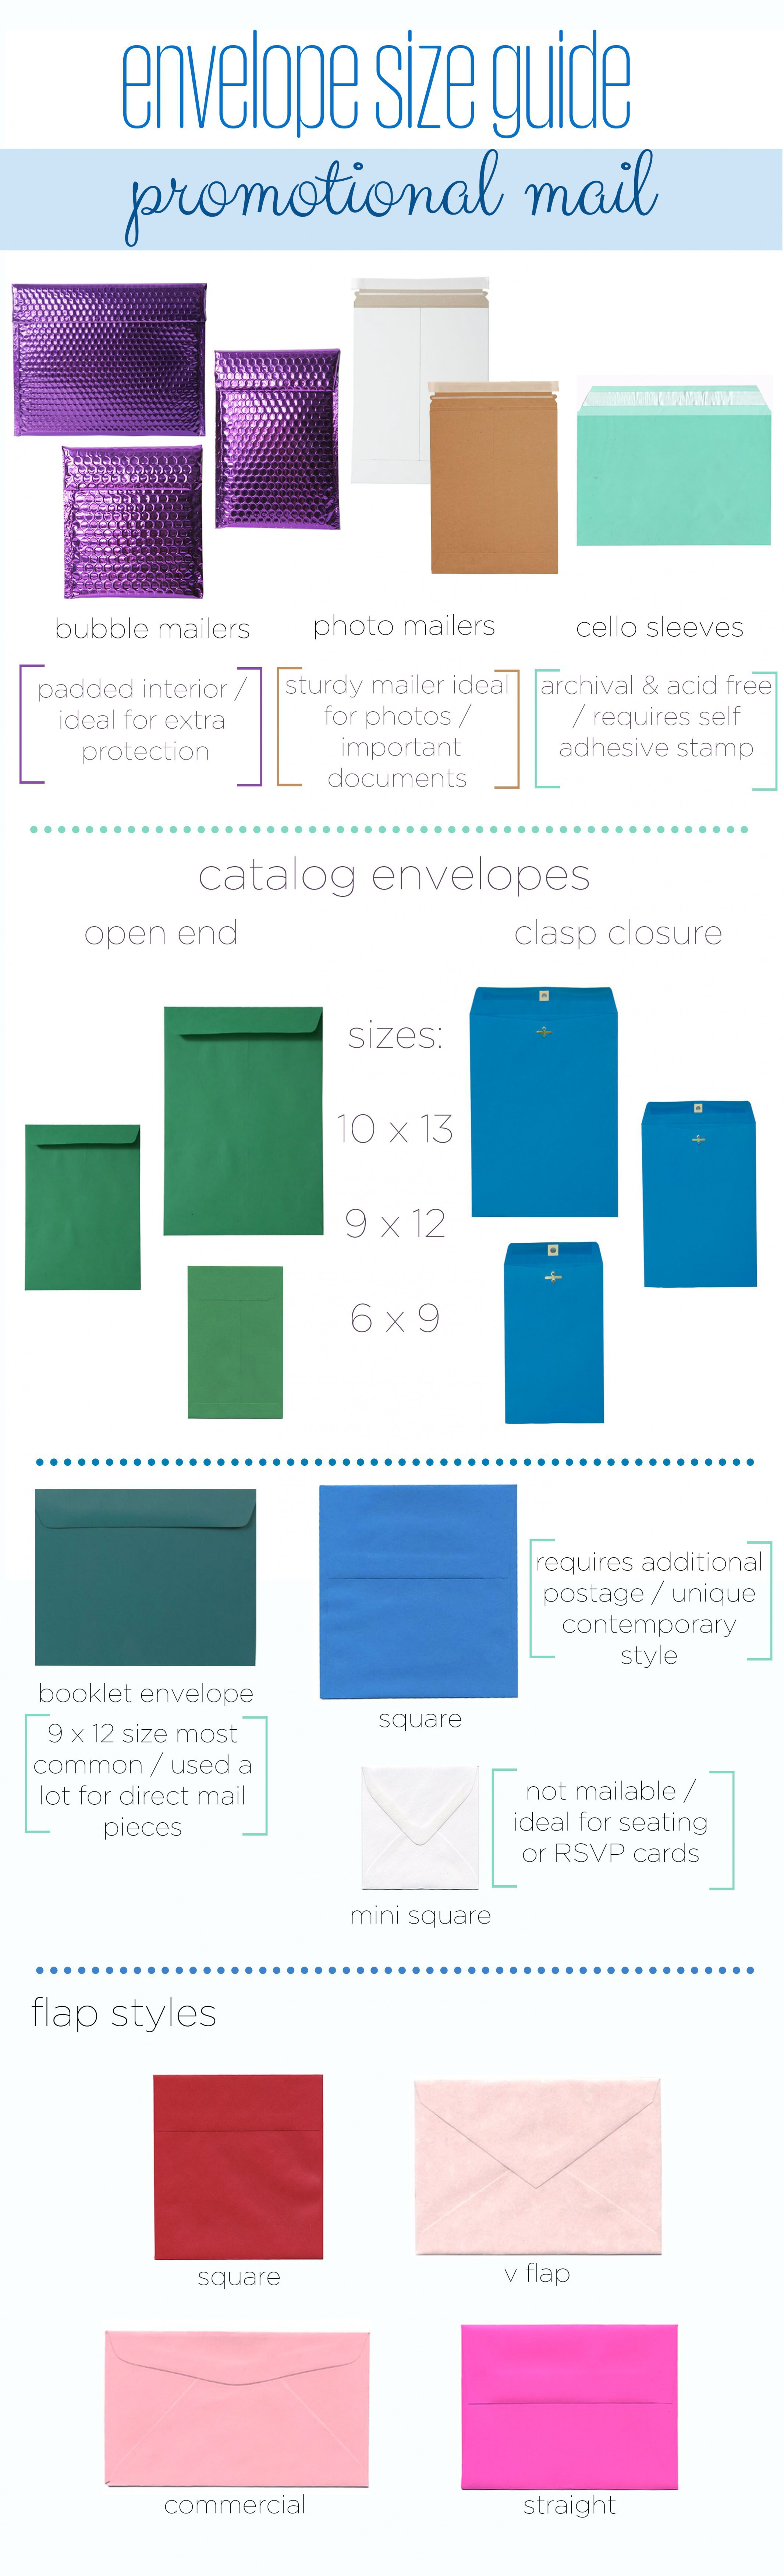 envelope size guide, promotional mail, promotional mailers